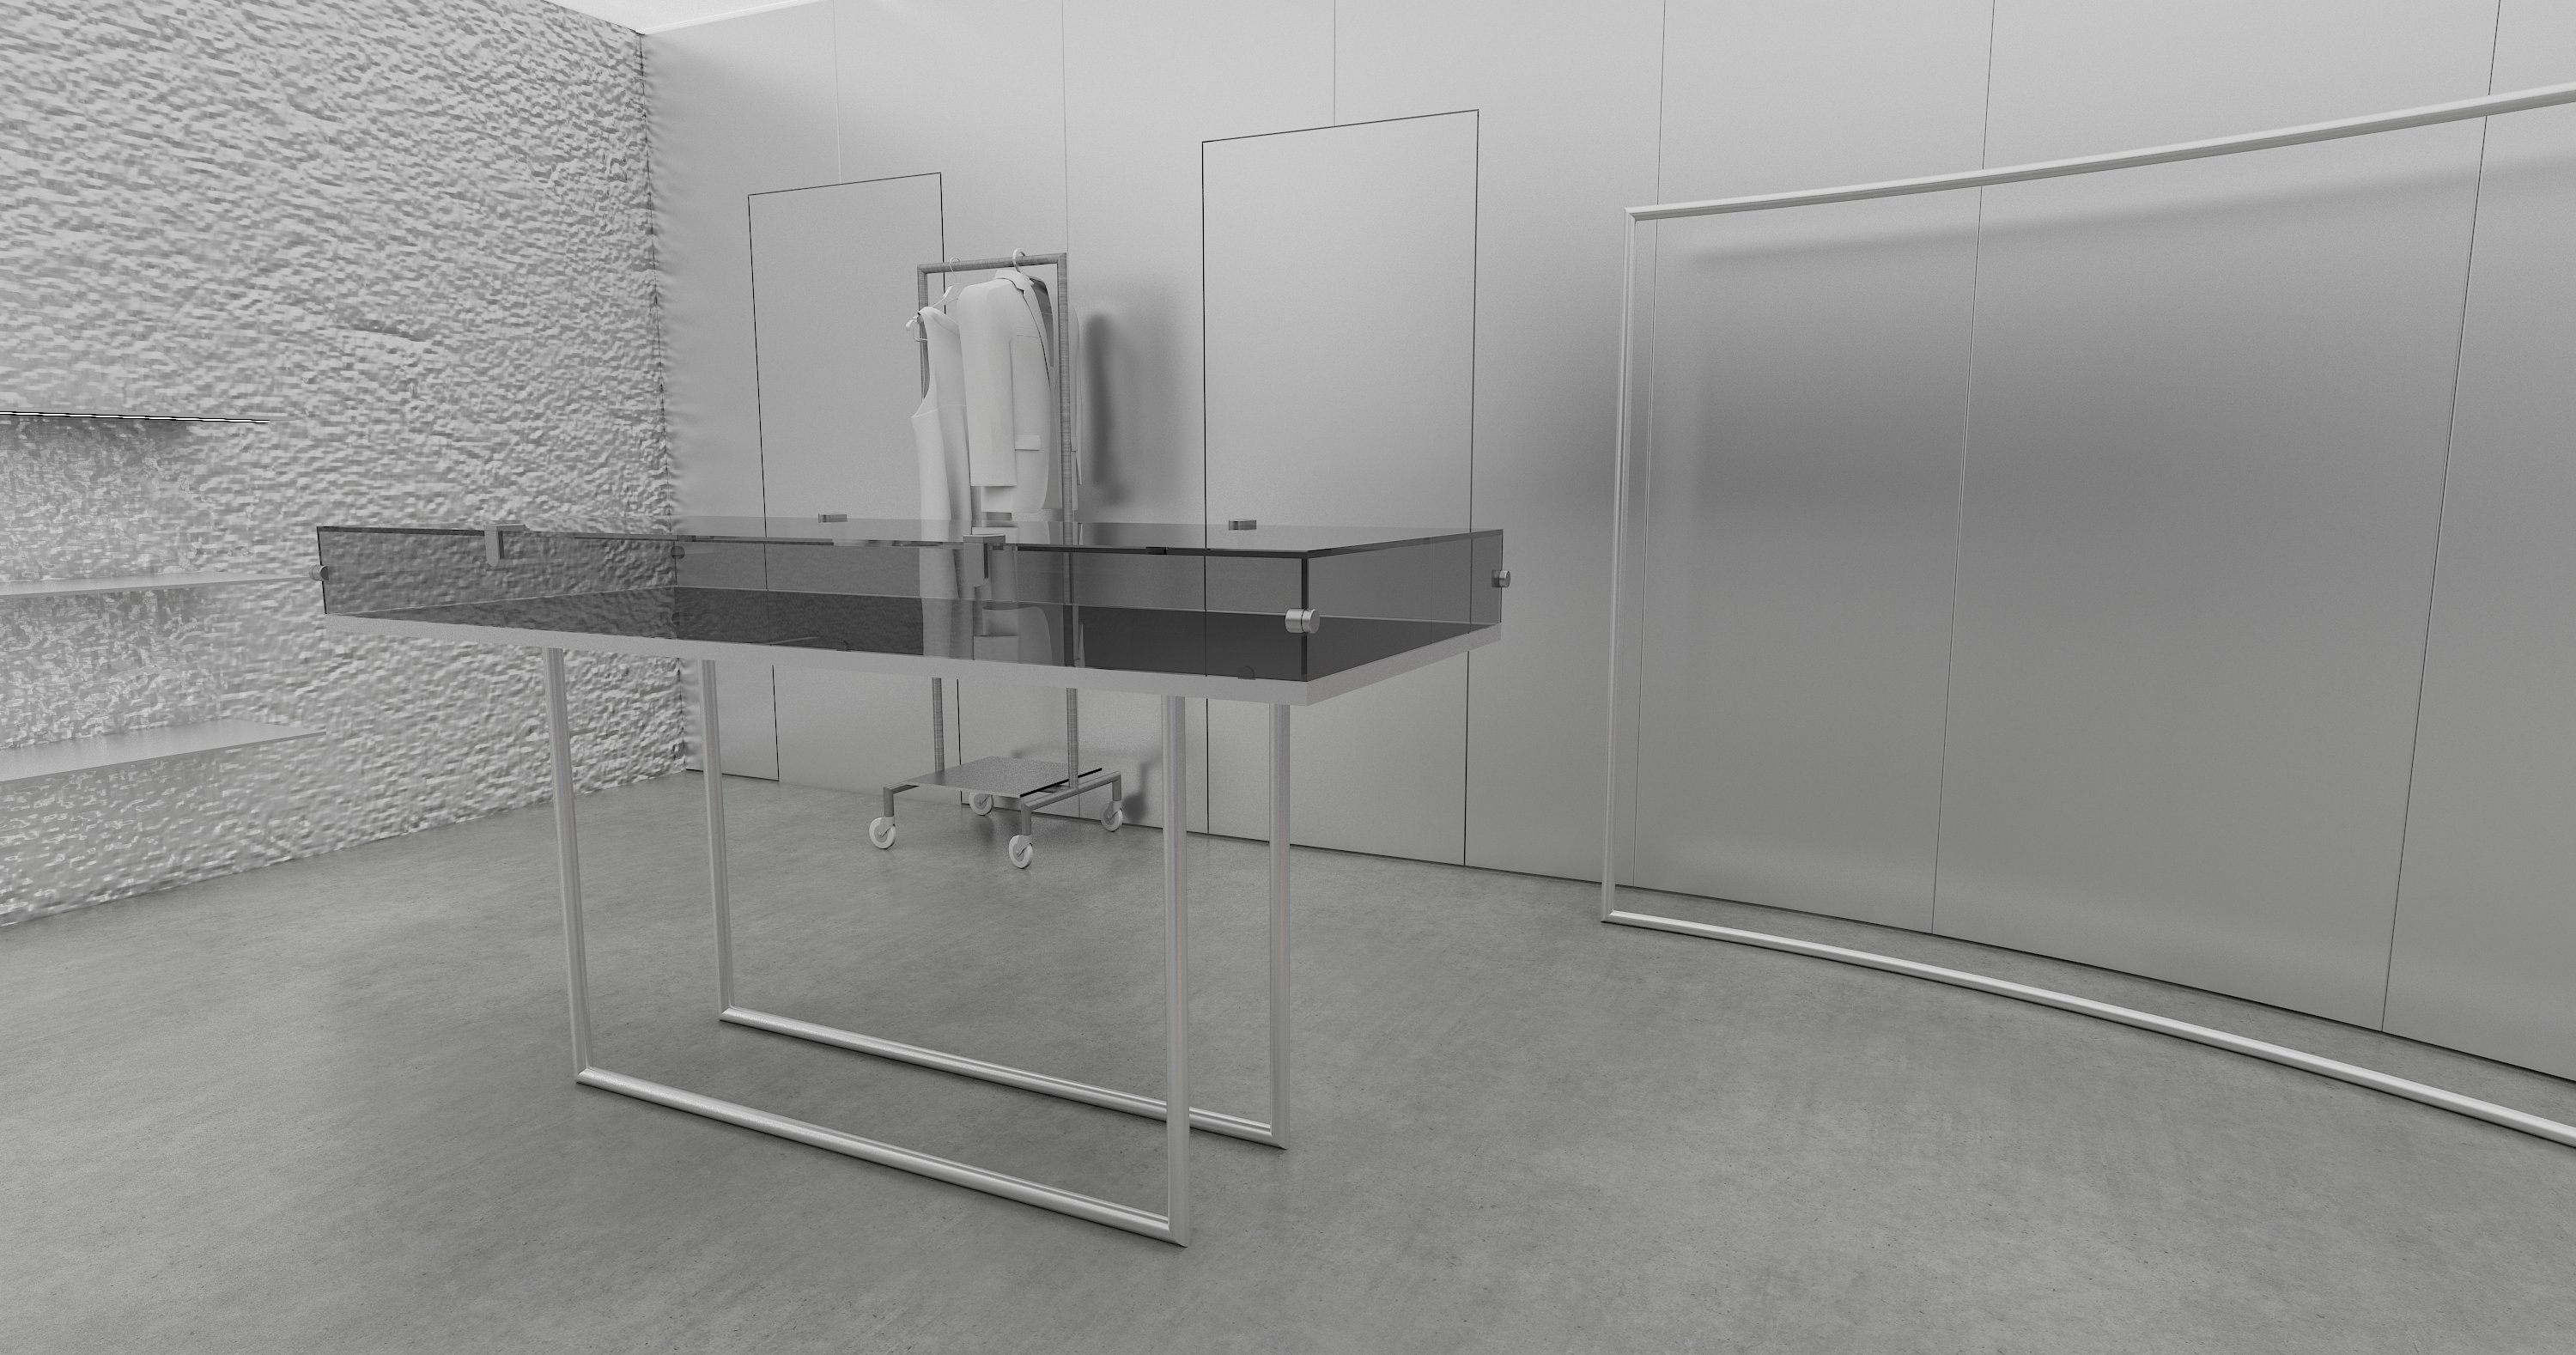 01 Glass table